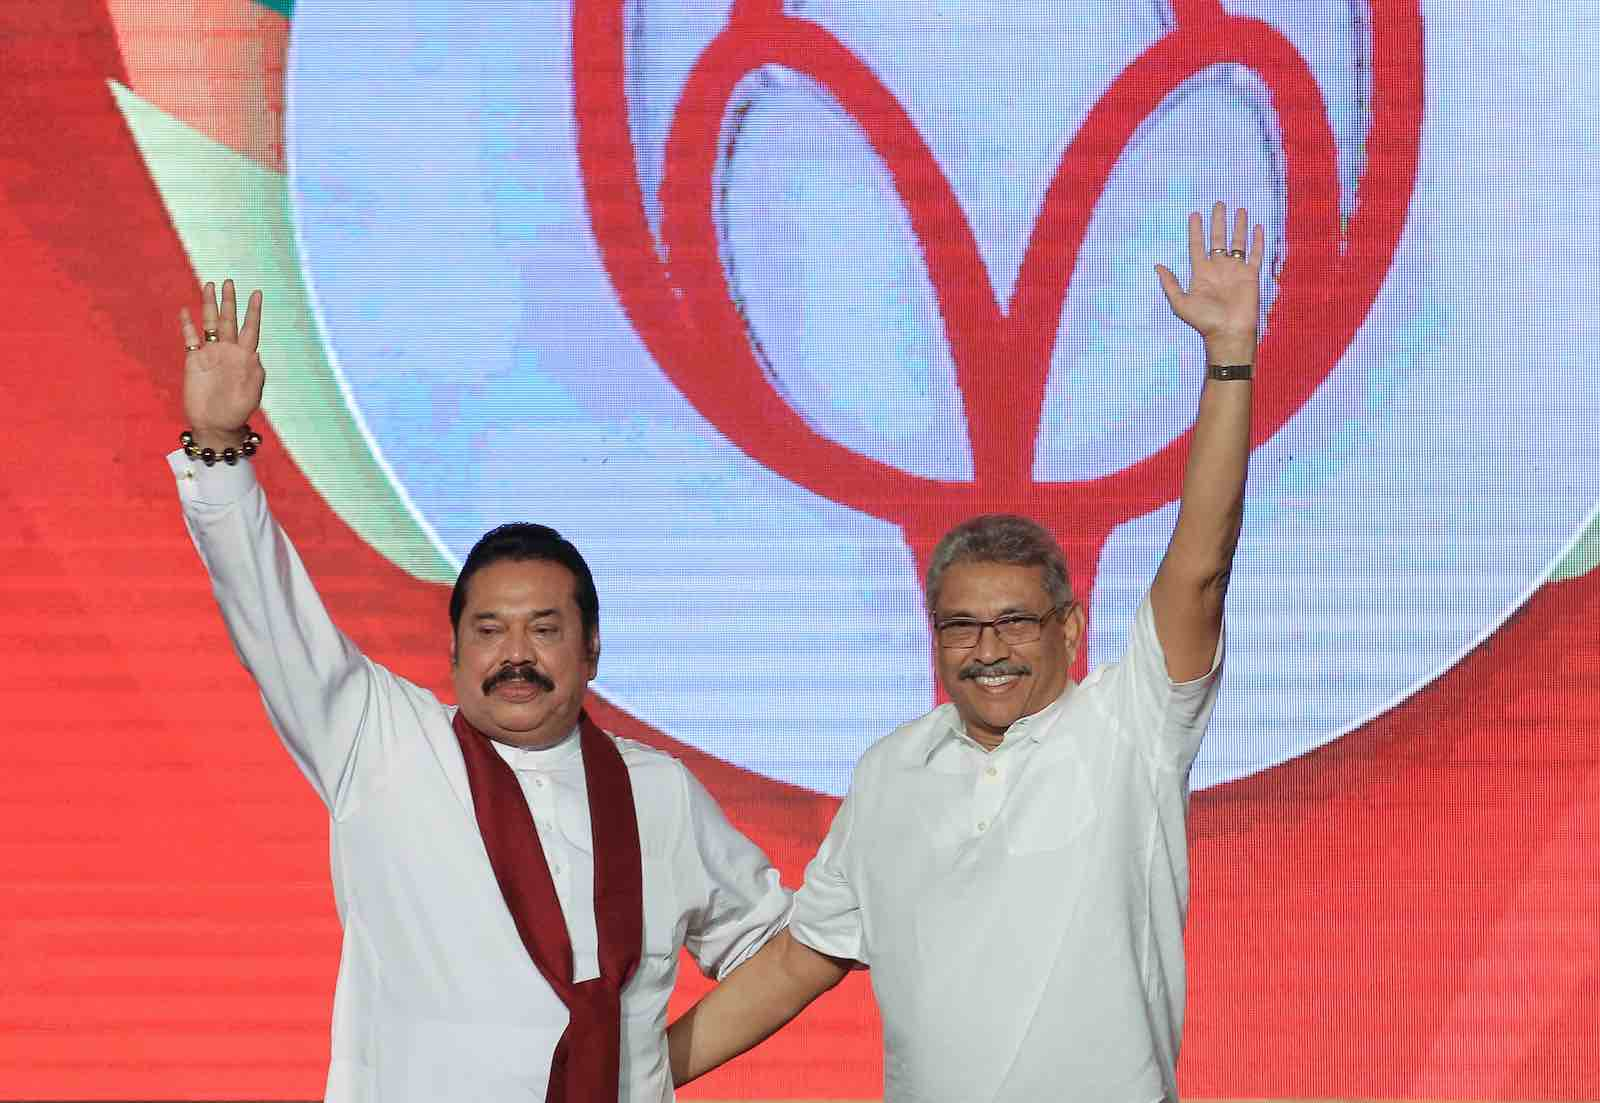 Former Sri Lankan president Mahinda Rajapaksa (L) with brother and presidential candidate Gotabaya Rajapaksa, Colombo, Sri Lanka, 11 August 2019. (Photo: Tharaka Basnayaka via Getty)